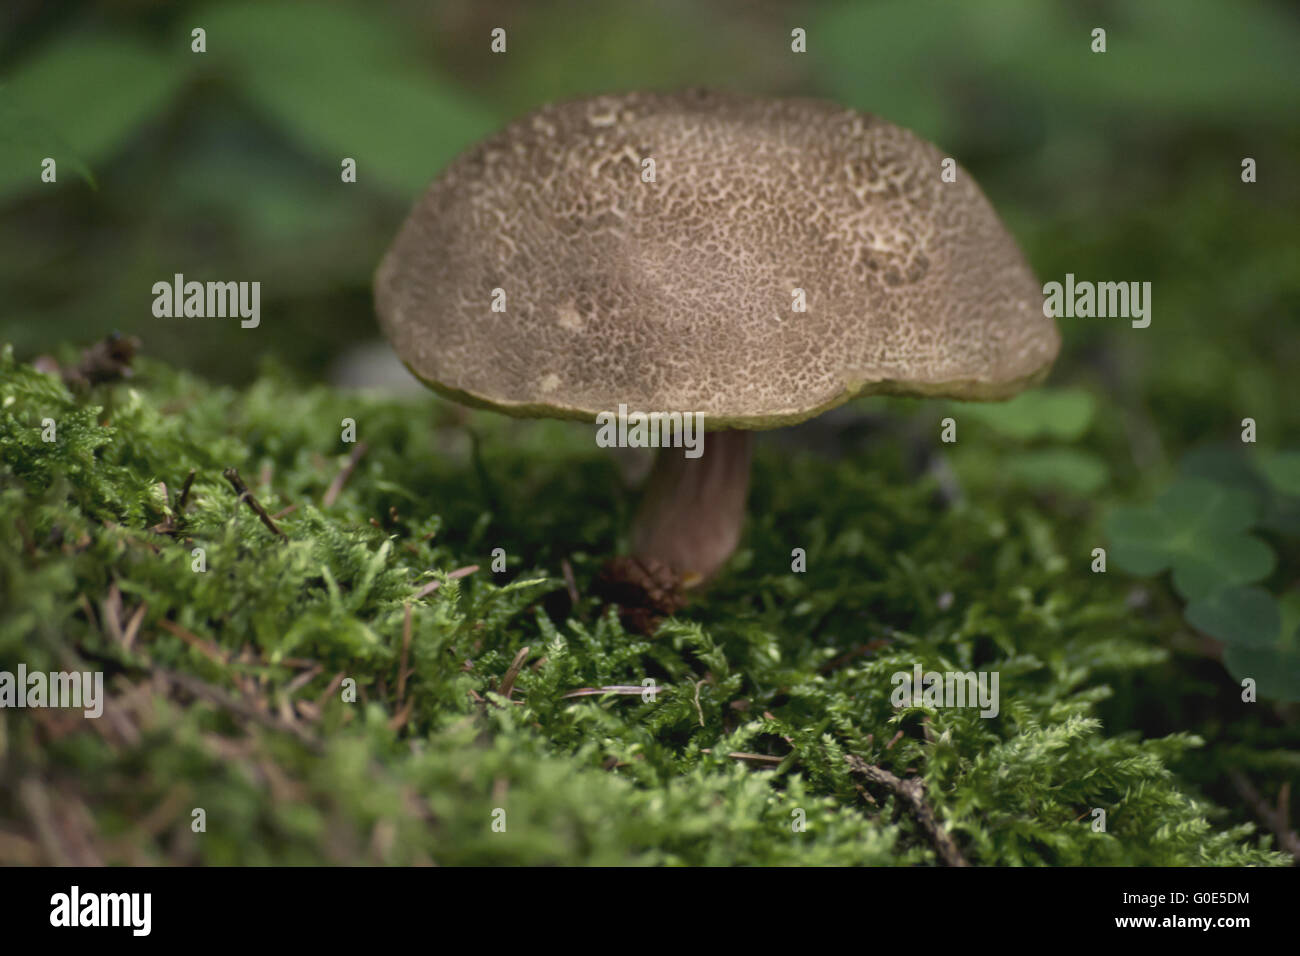 Mushroom in the forest - Stock Image